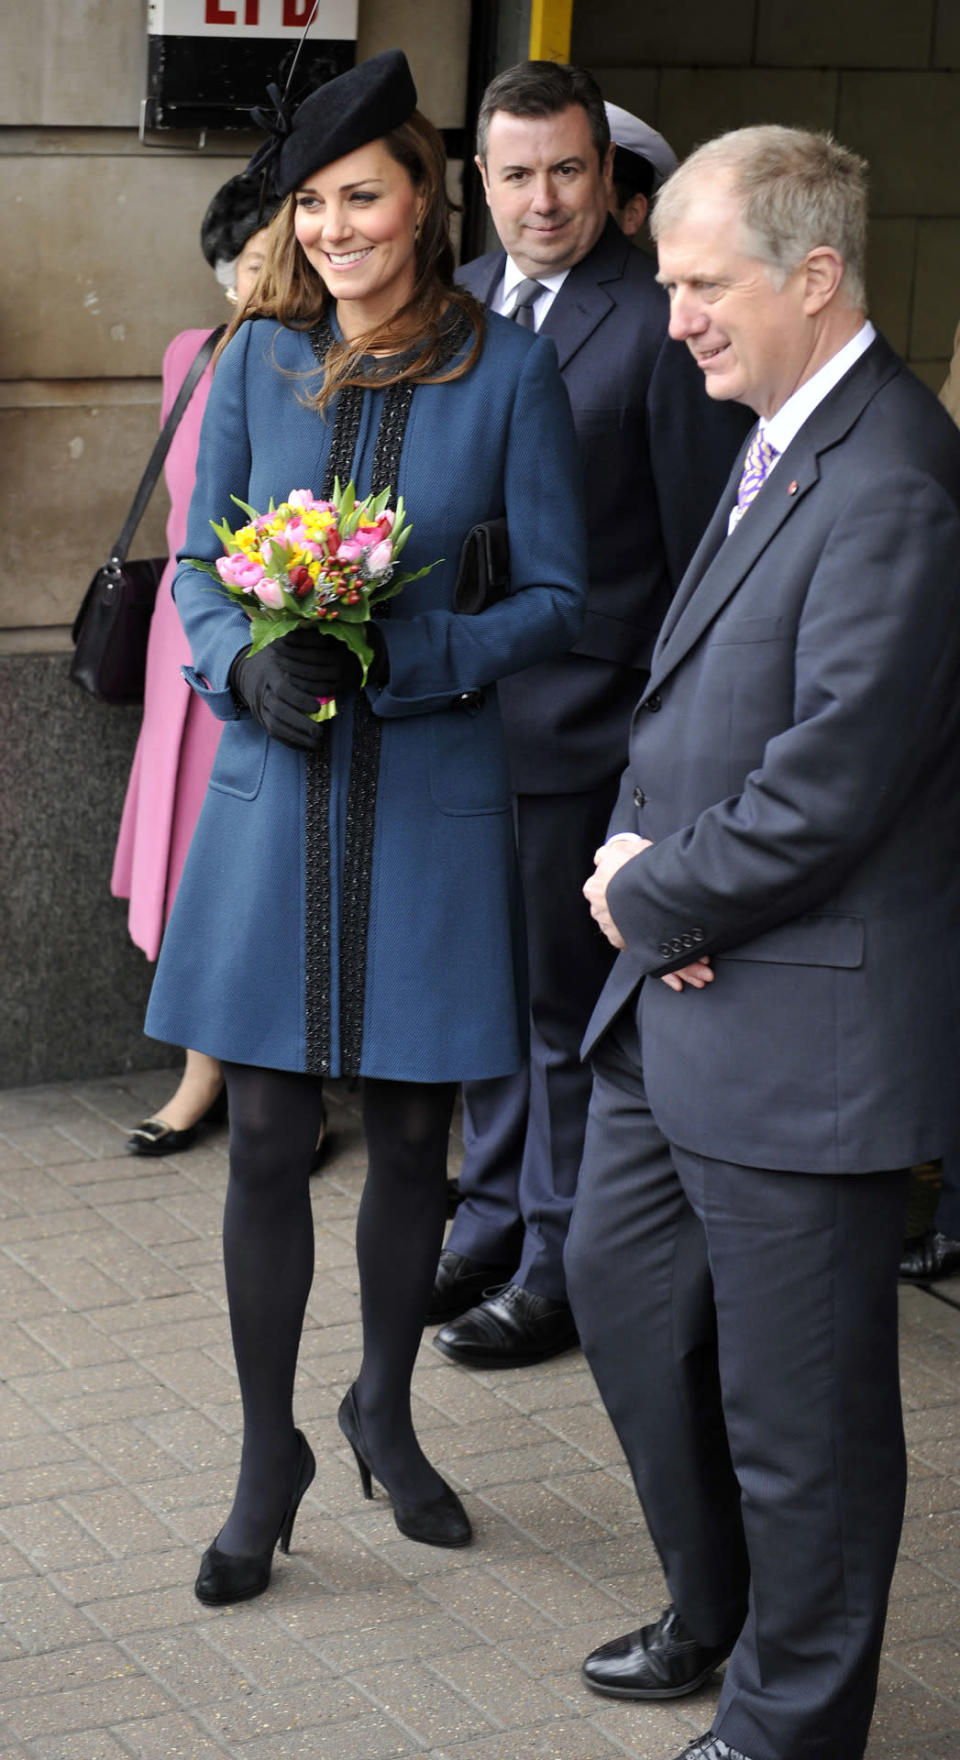 <p>For the 150th anniversary of the Tube, Kate went underground in a teal blue By Malene Birger coat. She accessorised with a Whiteley beret and black Episode pumps. </p><p><i>[Photo: PA]</i></p>